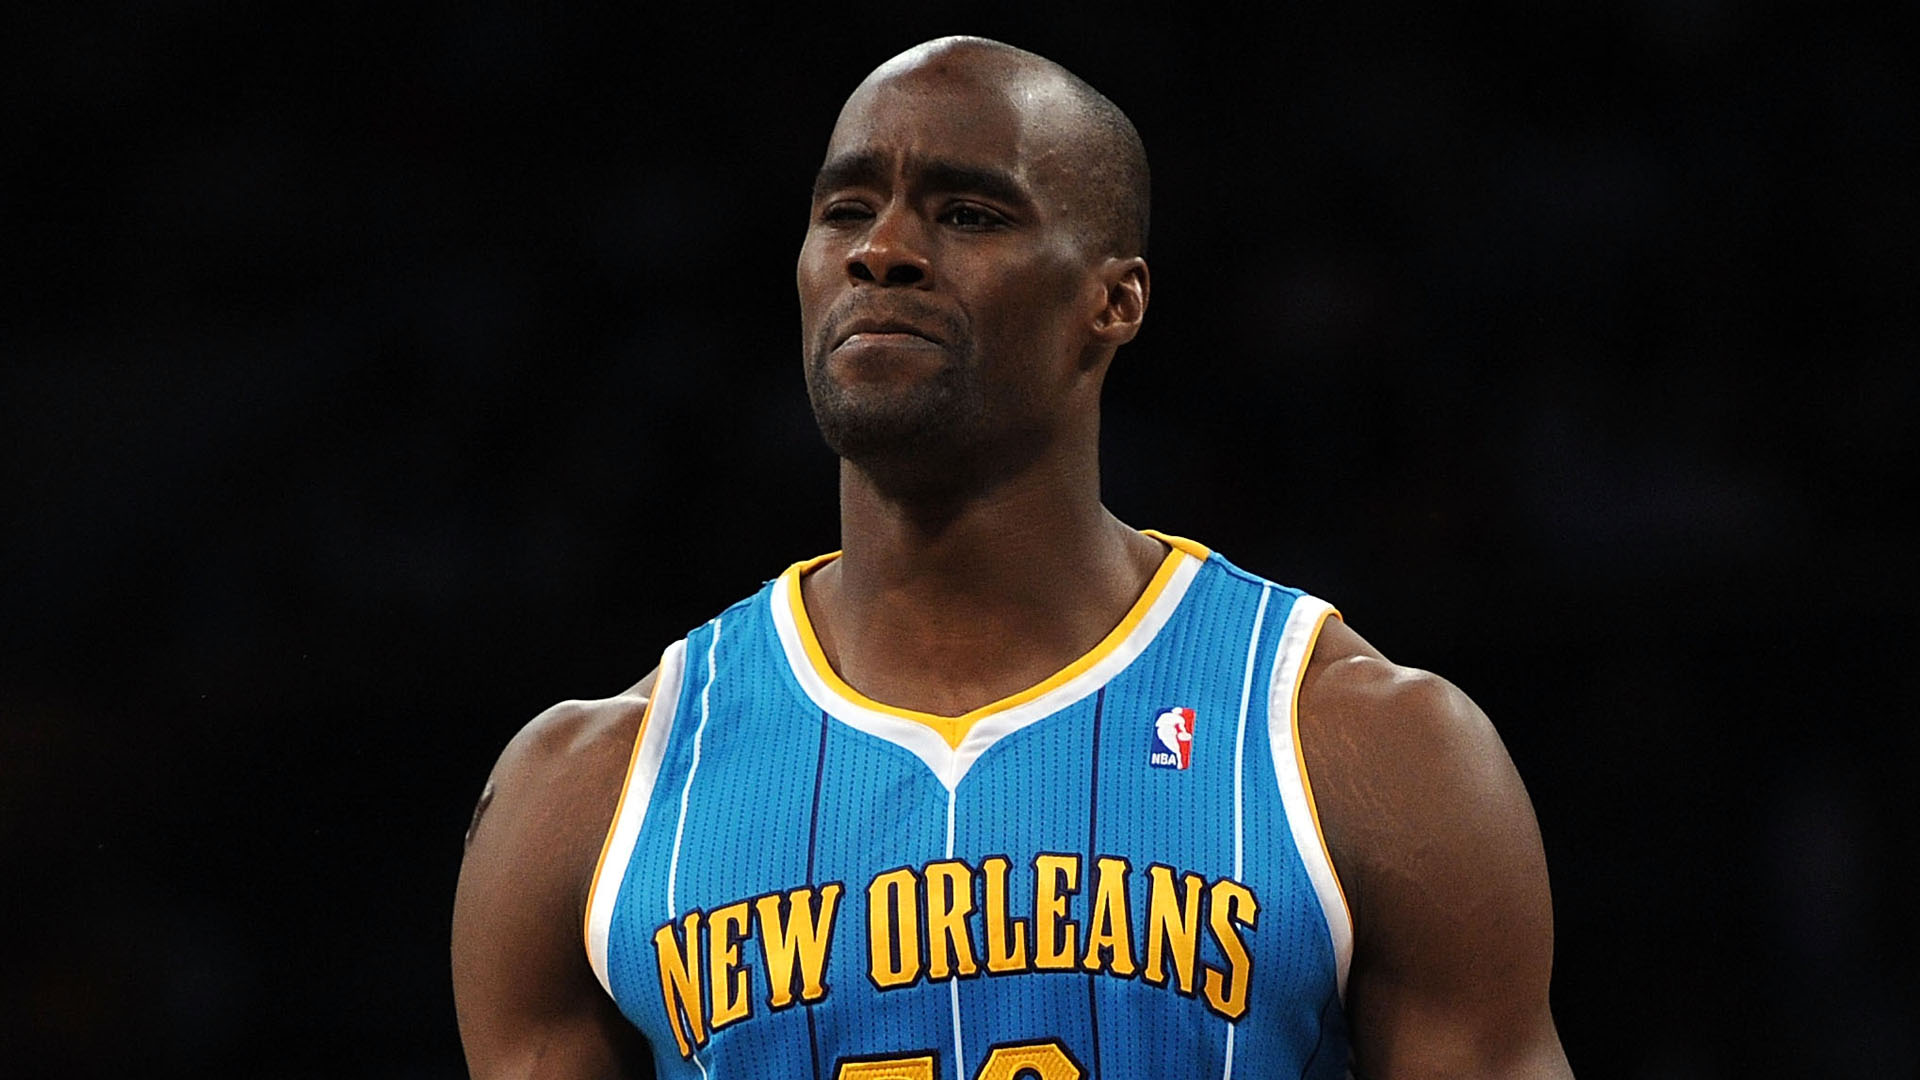 Pelicans to sign Emeka Okafor to 10-day contract